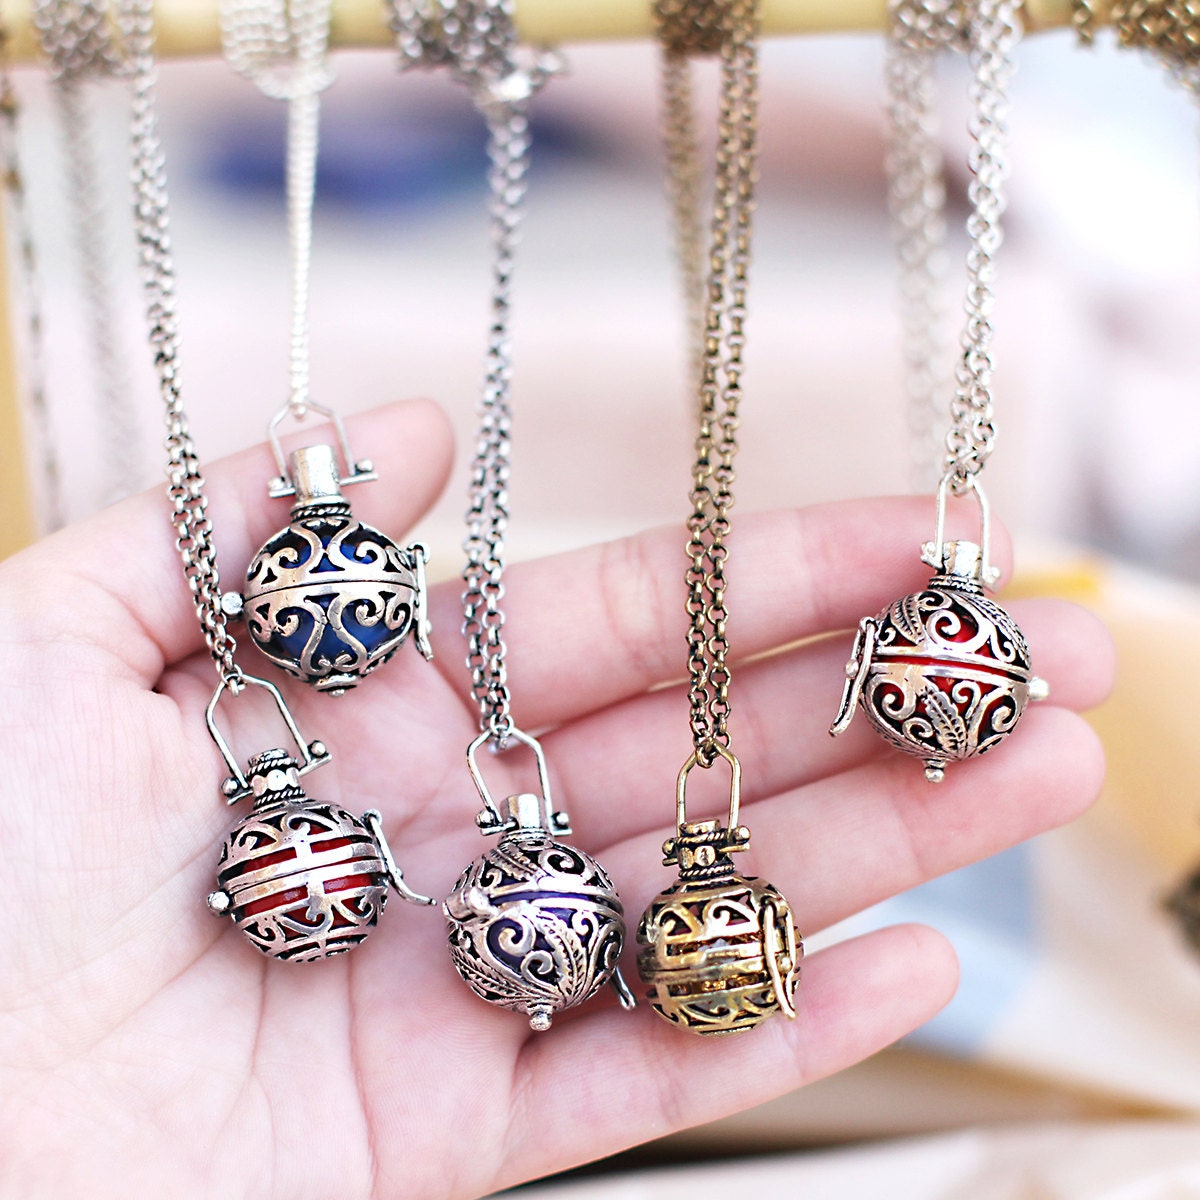 Maternity angel caller pendant pregnancy necklace harmony ball zoom aloadofball Image collections